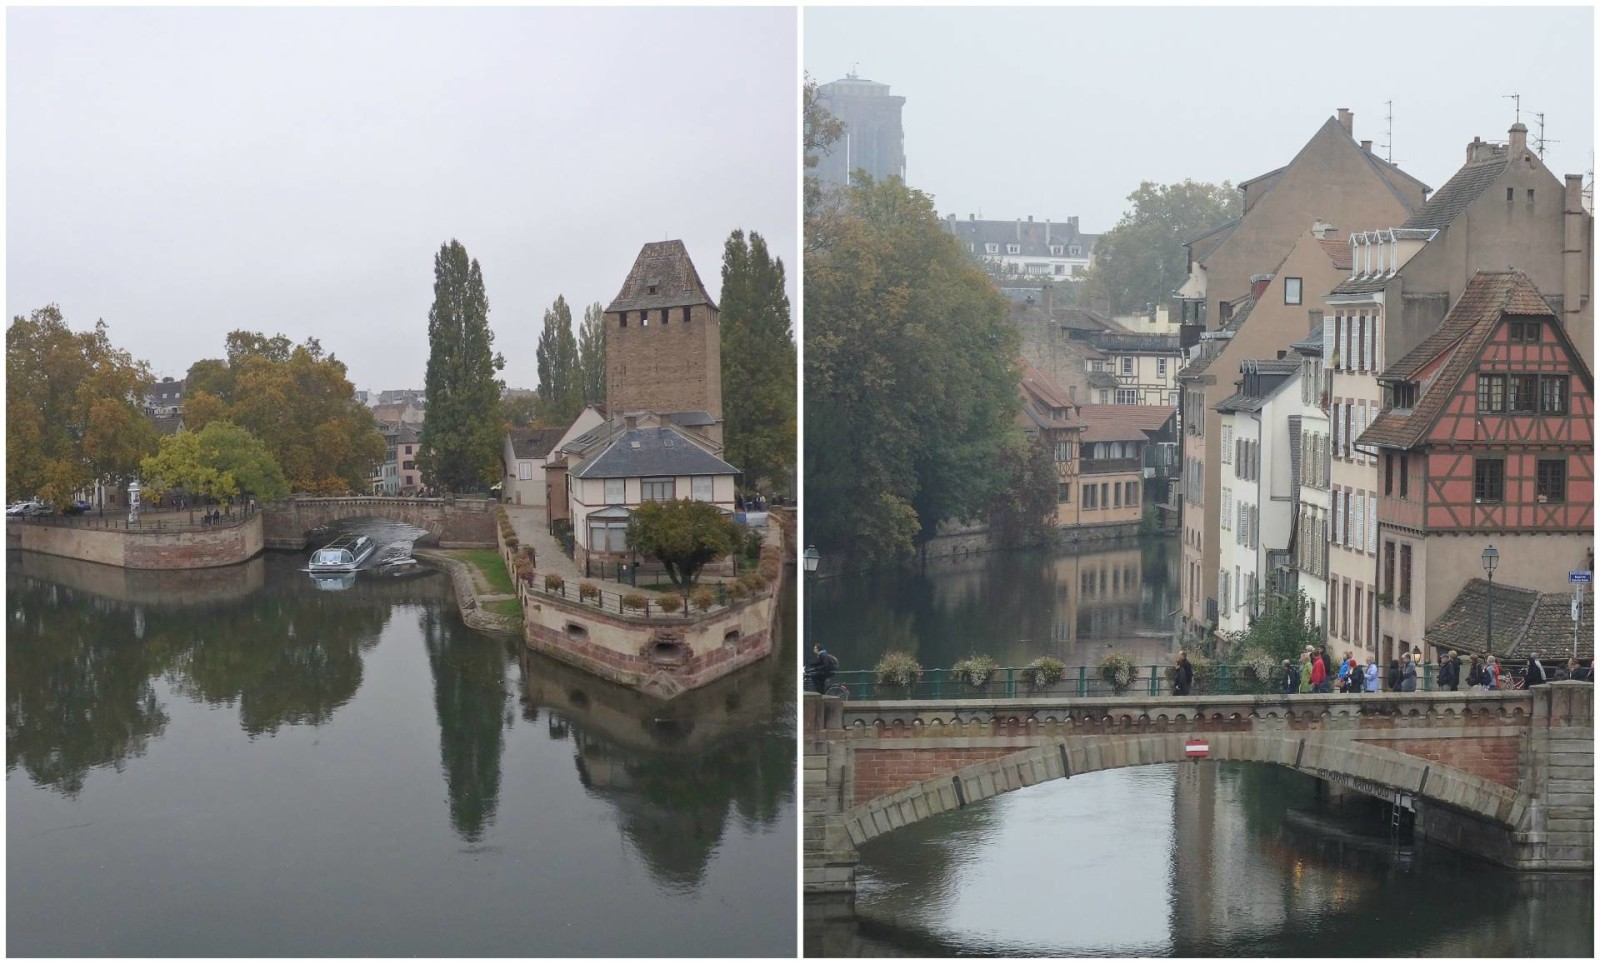 France Travel Inspiration - visiting Strasbourg, France on your next vacation then you've picked one of the prettiest cities in France to visit!  Here's my Guide of Things to Do and See in Strasbourg France...it's a perfect city to visit for 2-3 days plus there are some handy gluten free food traveling tips in there as well.